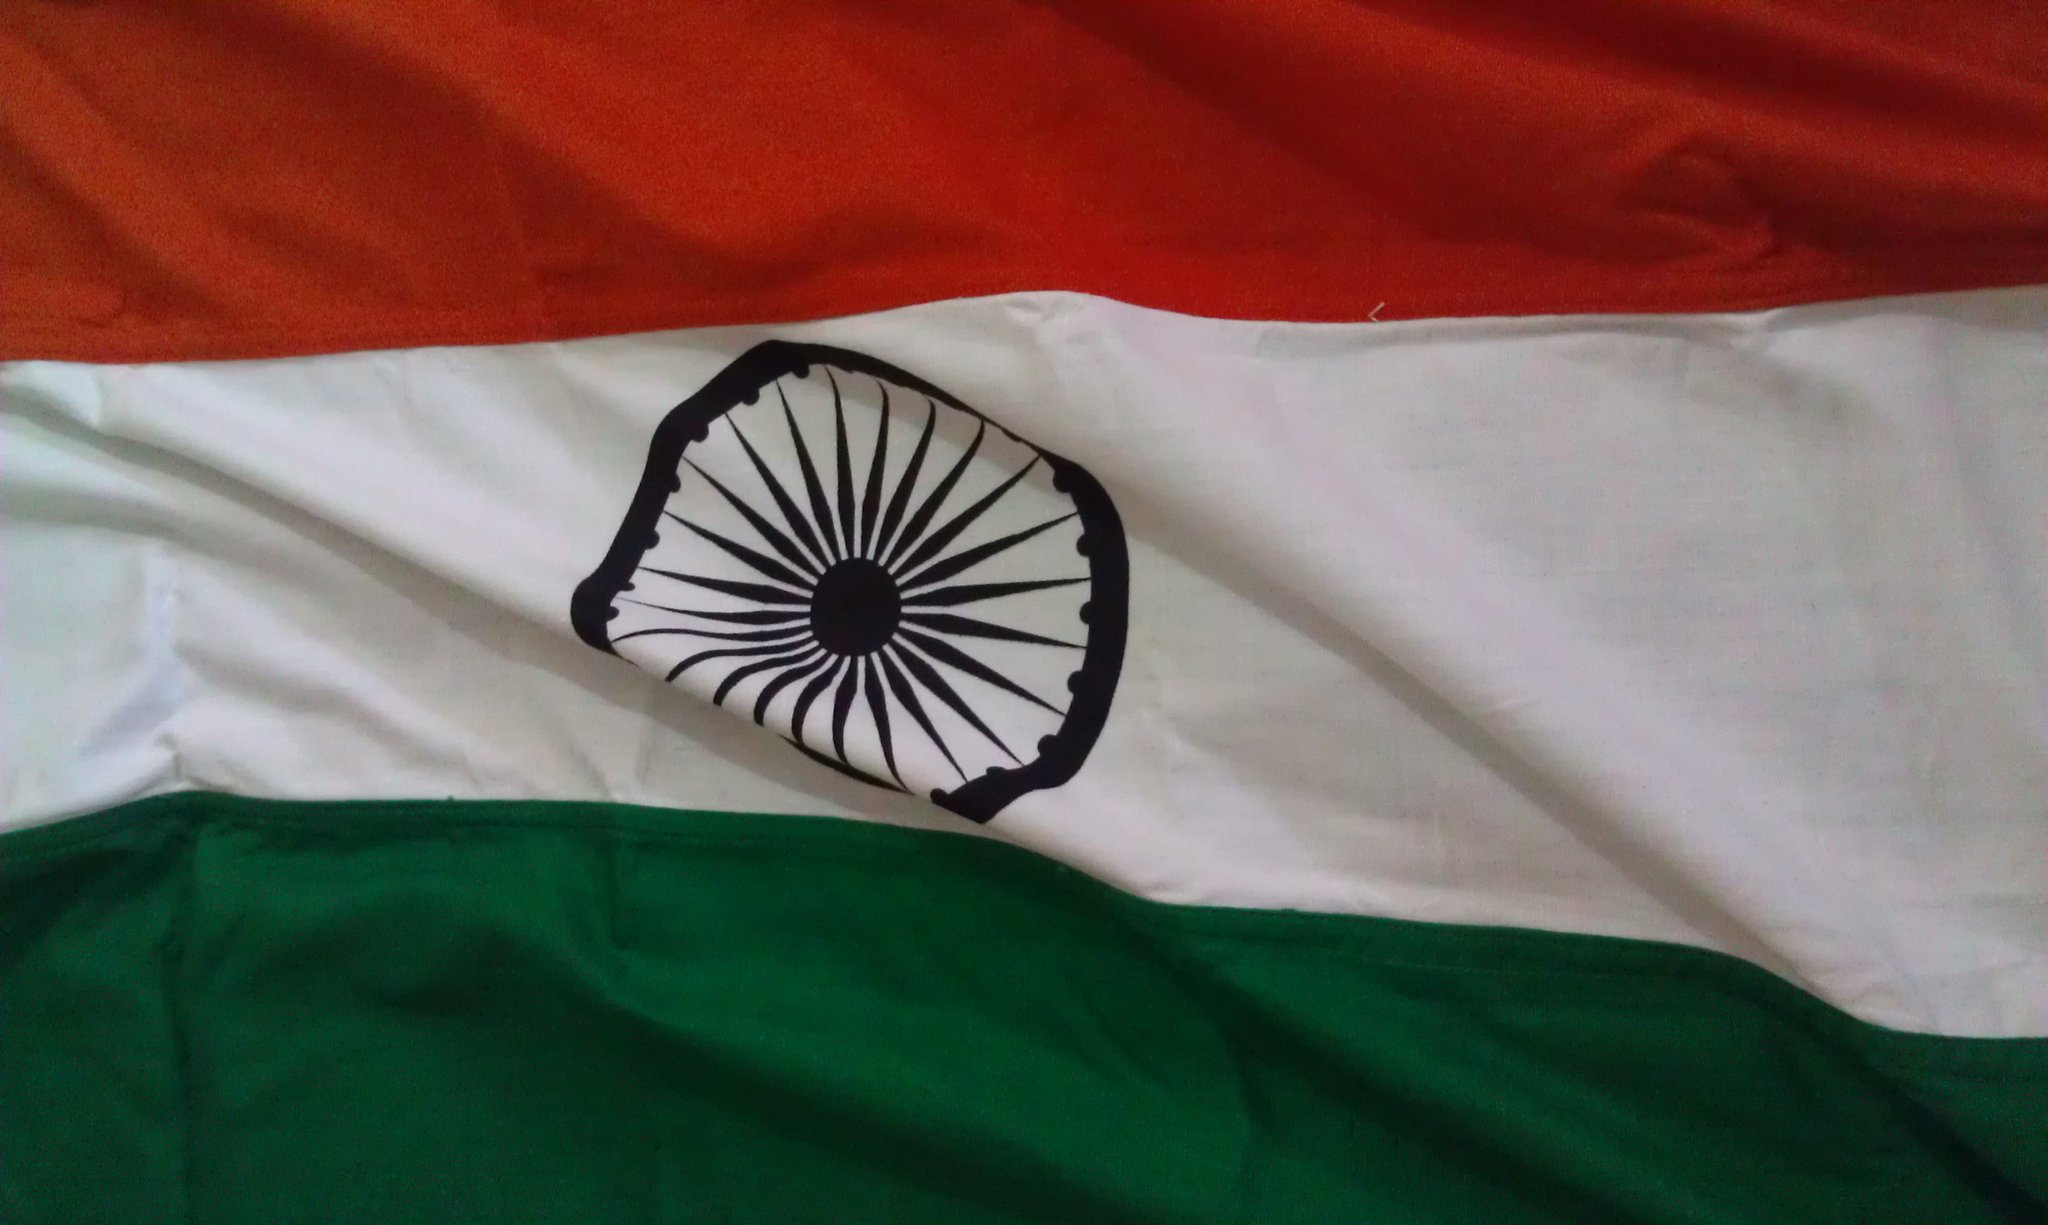 We see various adoptions of the Indian national flag today